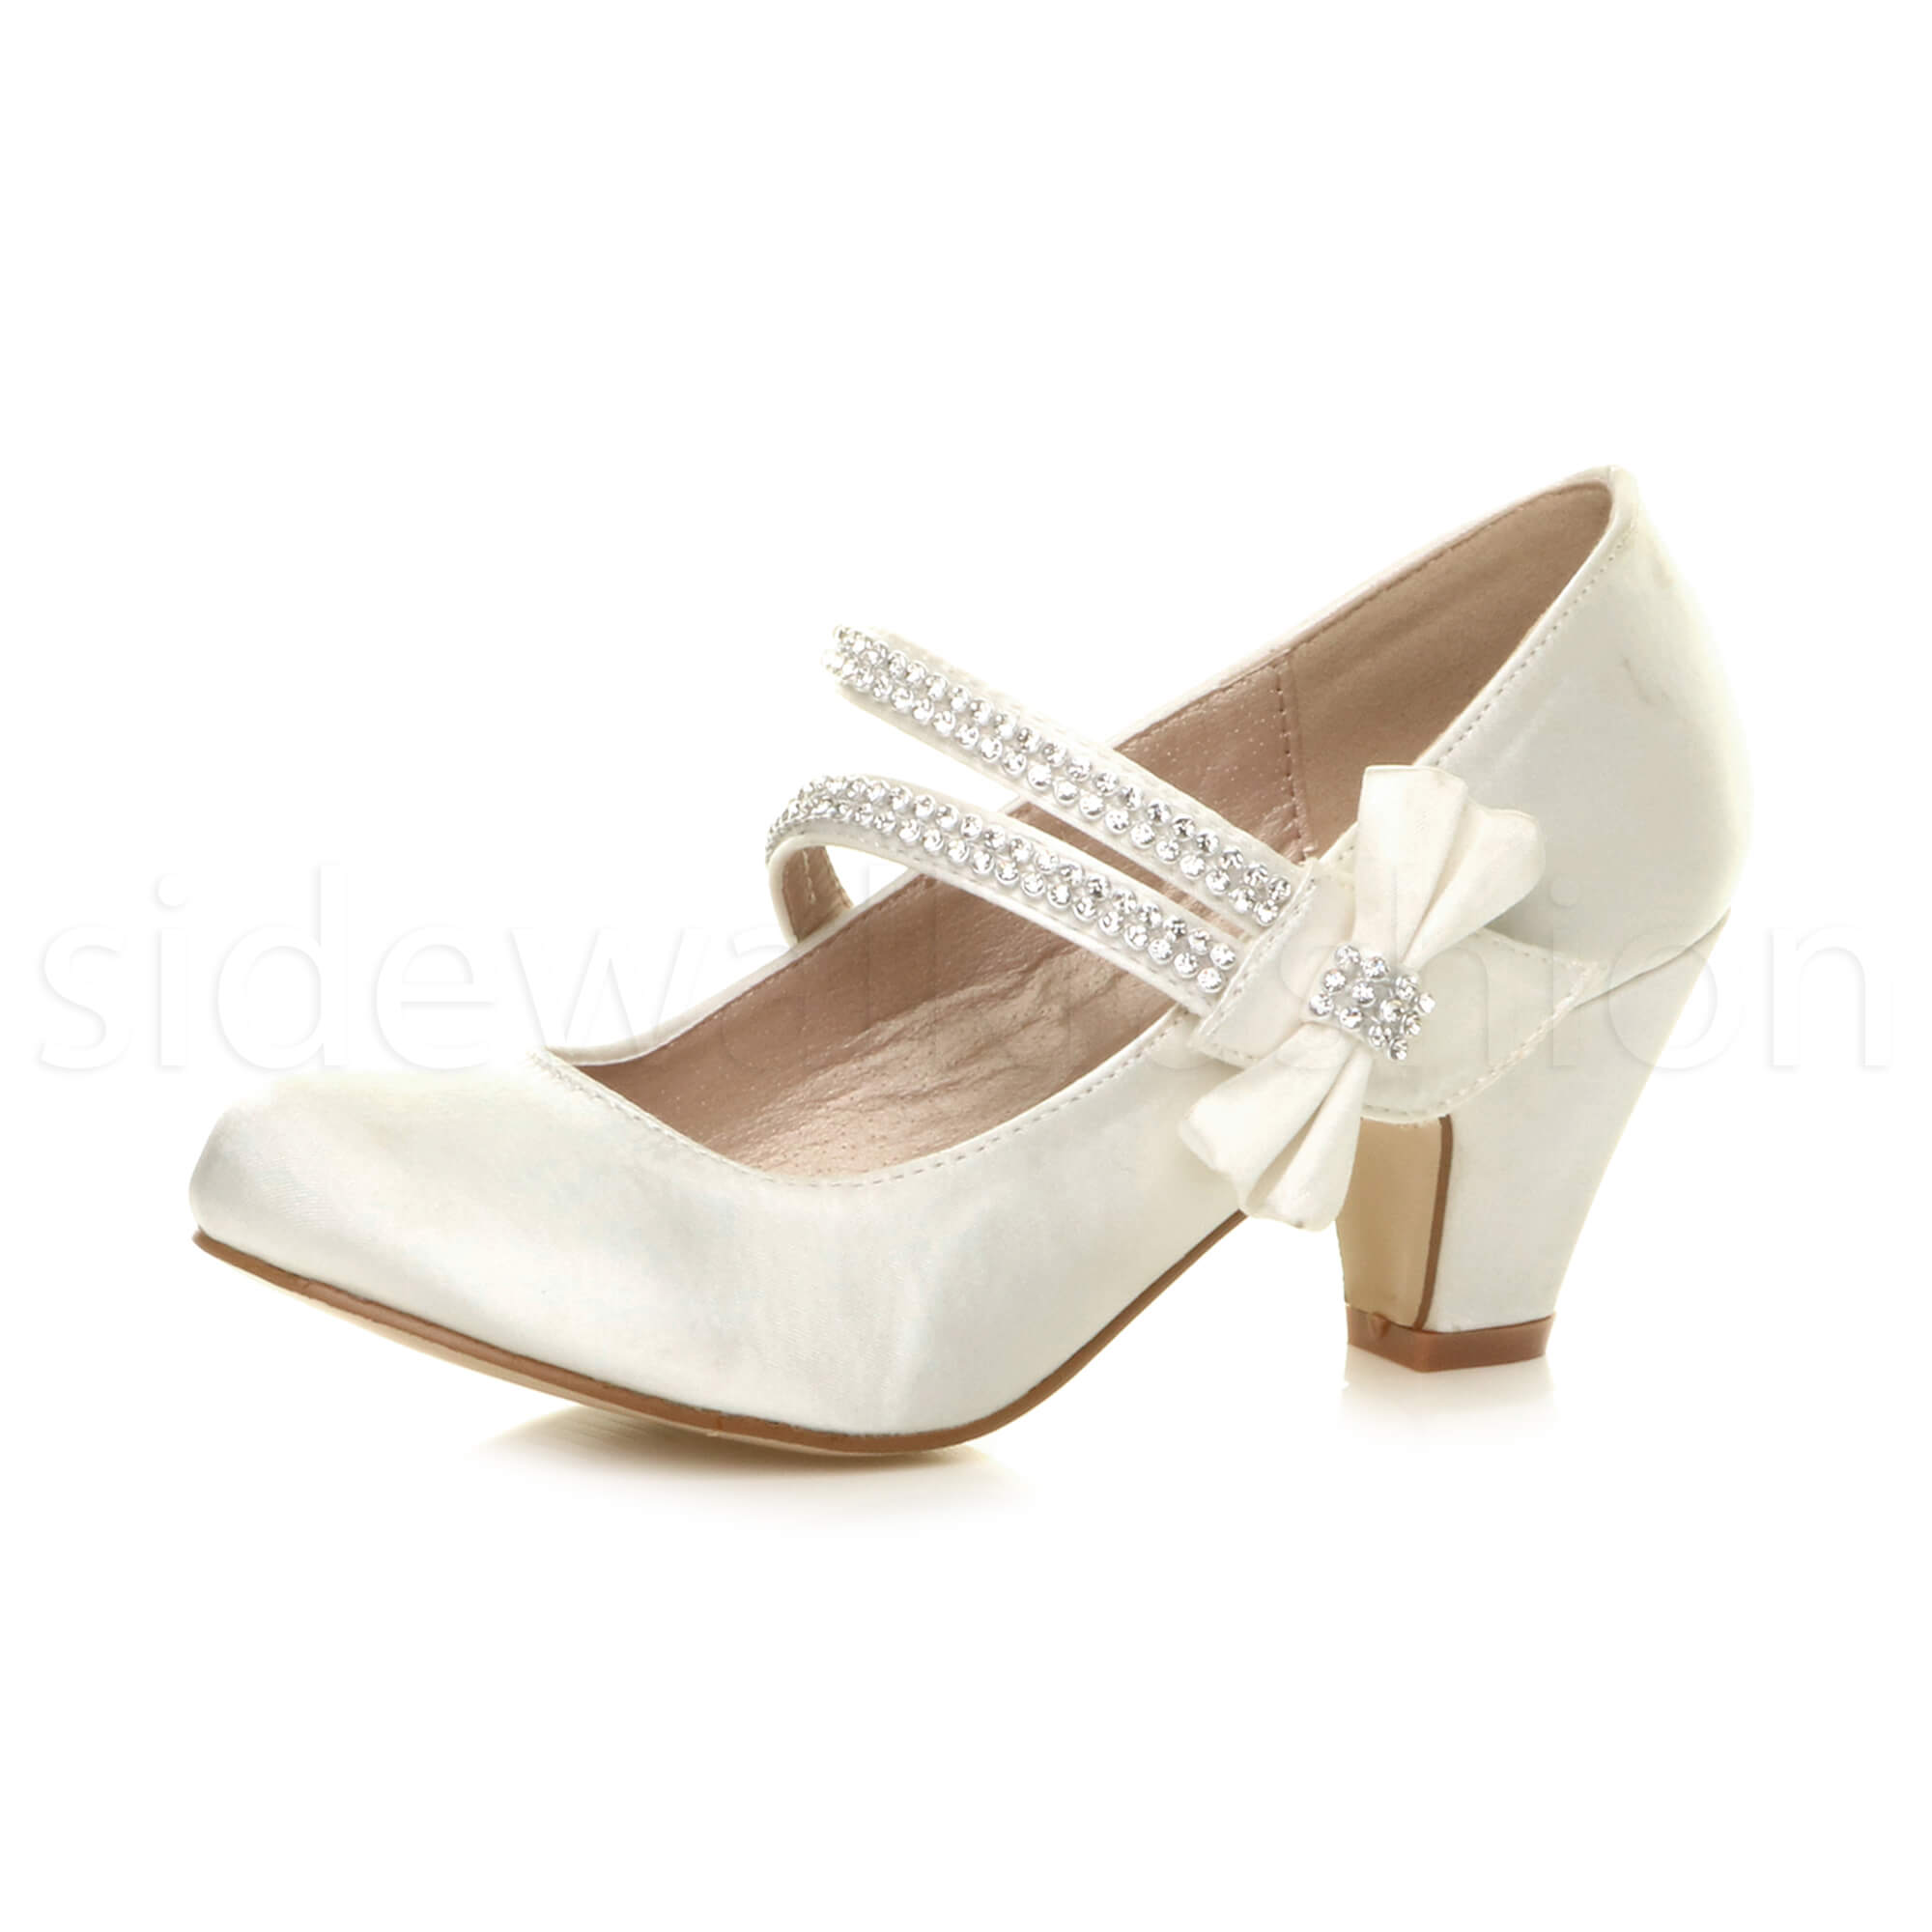 Childrens Ivory Shoes Size